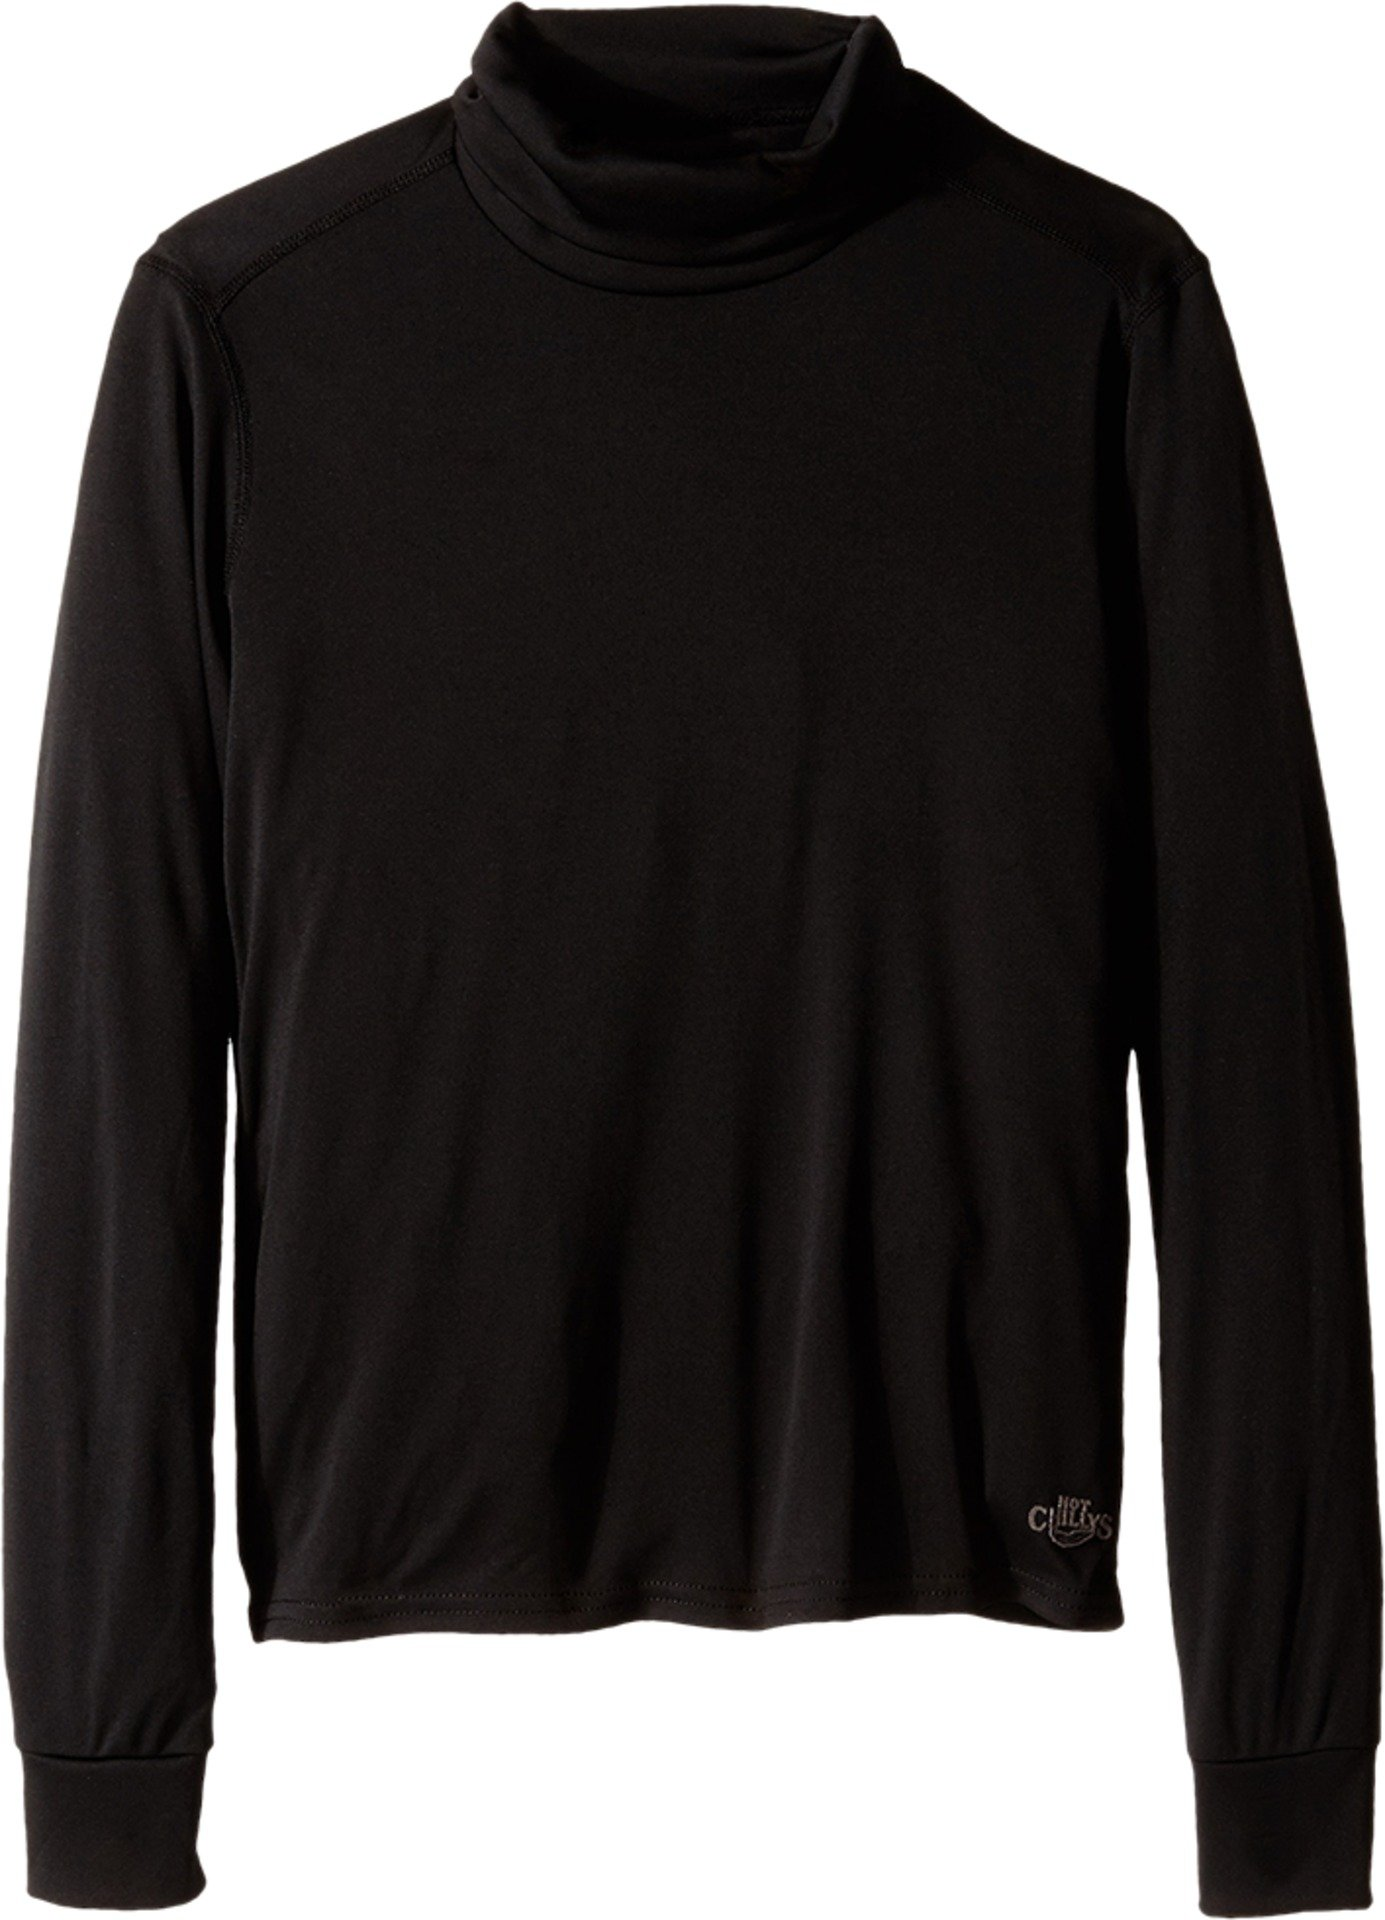 Hot Chillys Youth Peach T-Neck Tee (Black, Medium) by Hot Chillys